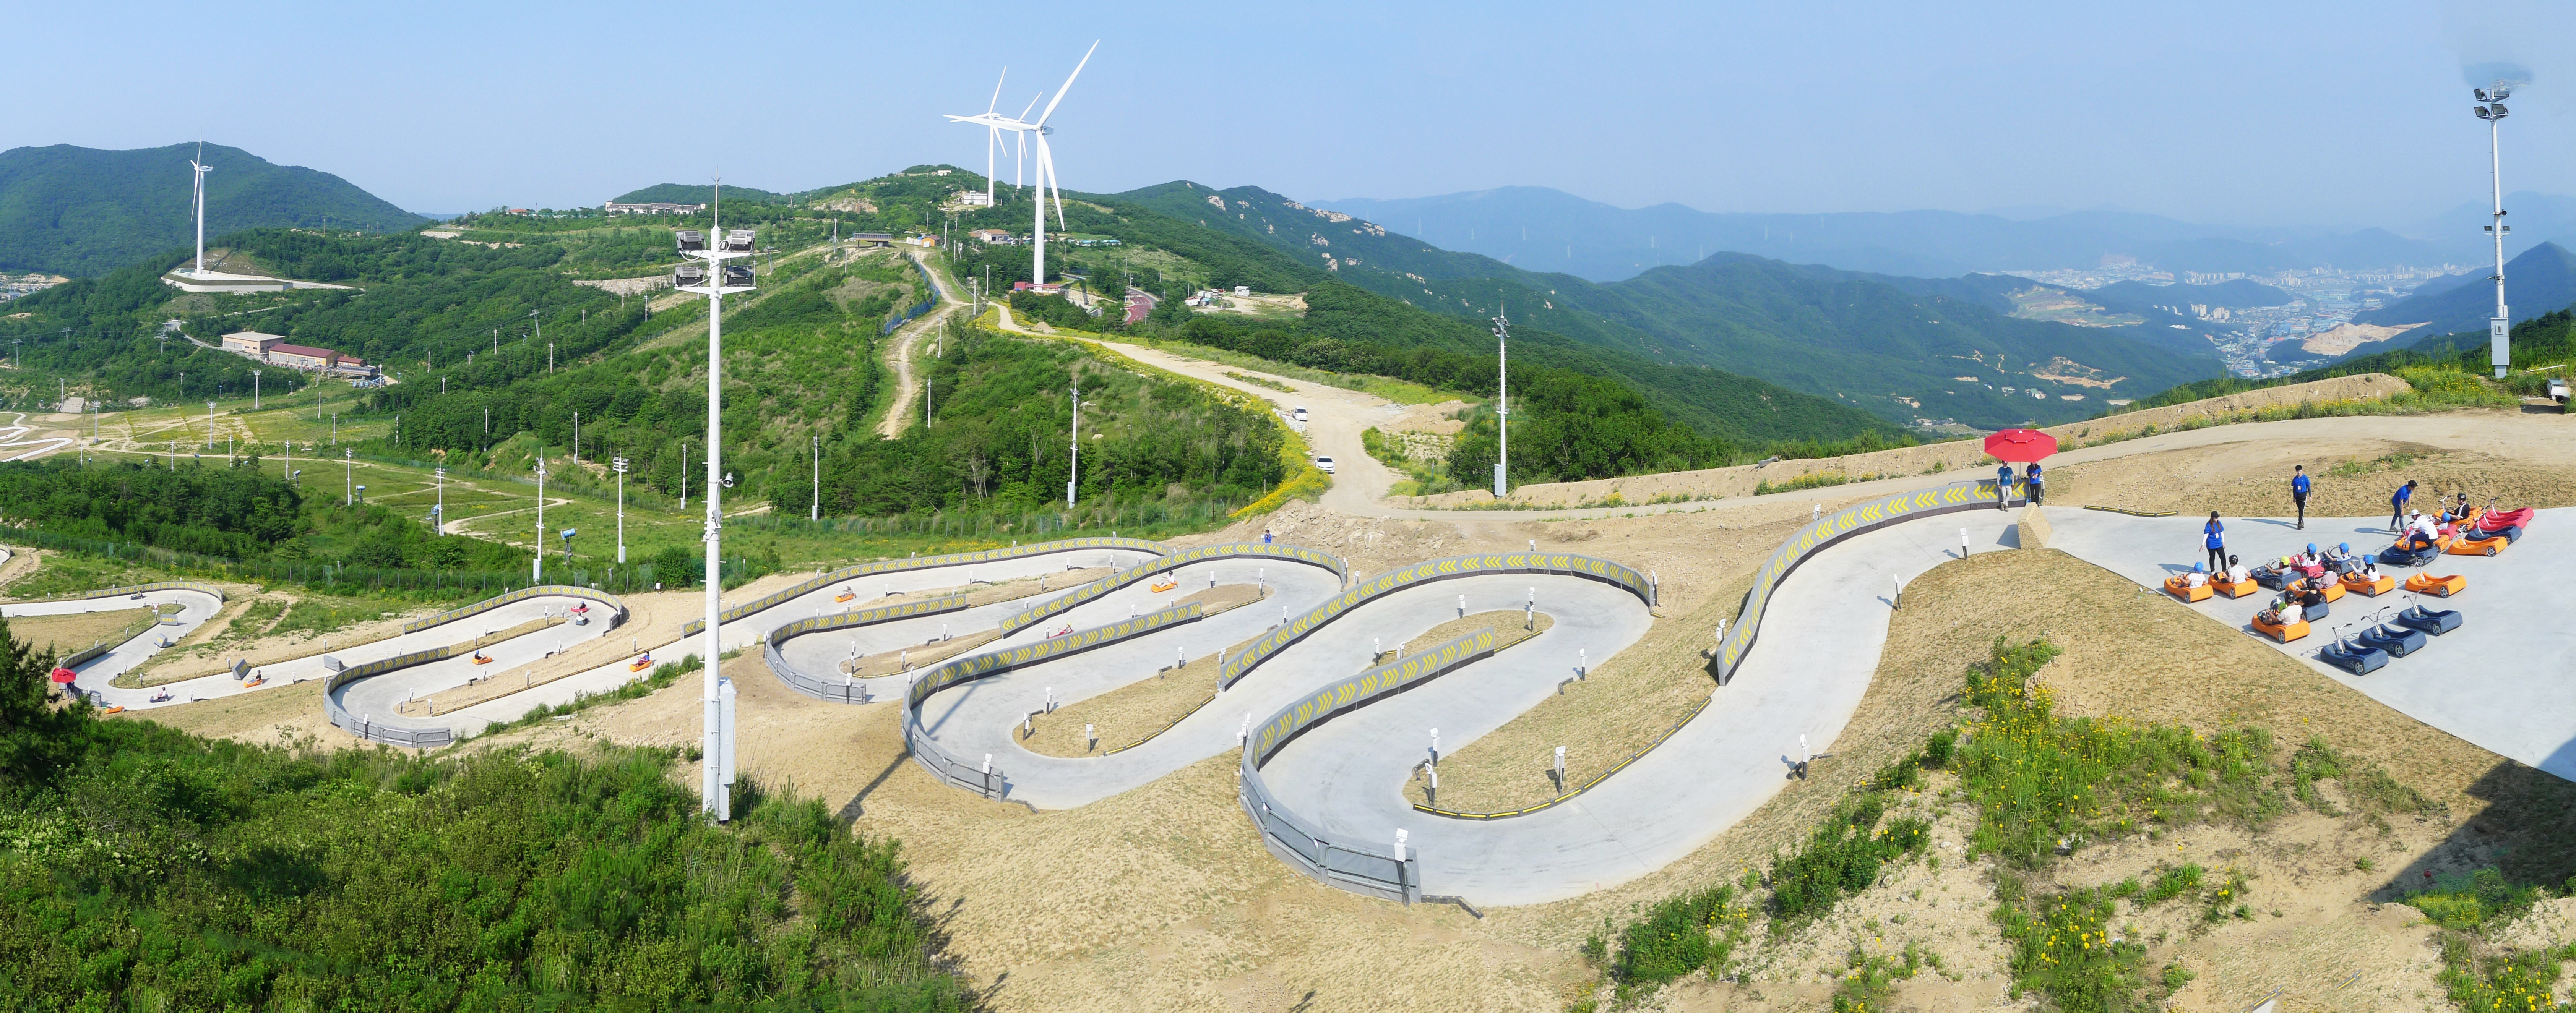 Eden Valley Luge + East Busan One Day Tour